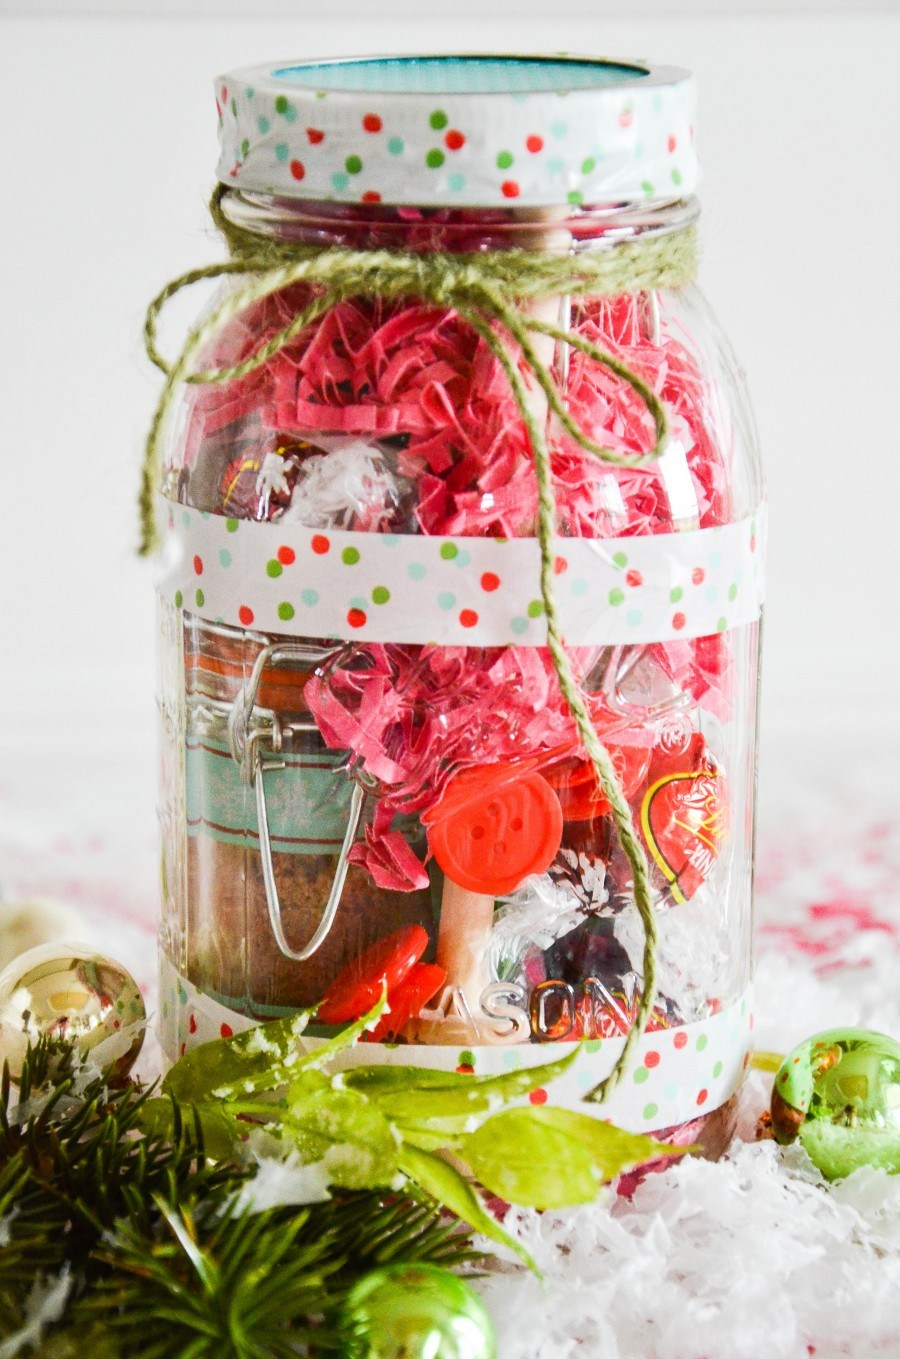 25 valentine 39 s day gifts in a mason jar yesterday on tuesday Christmas gift ideas for cooking lovers